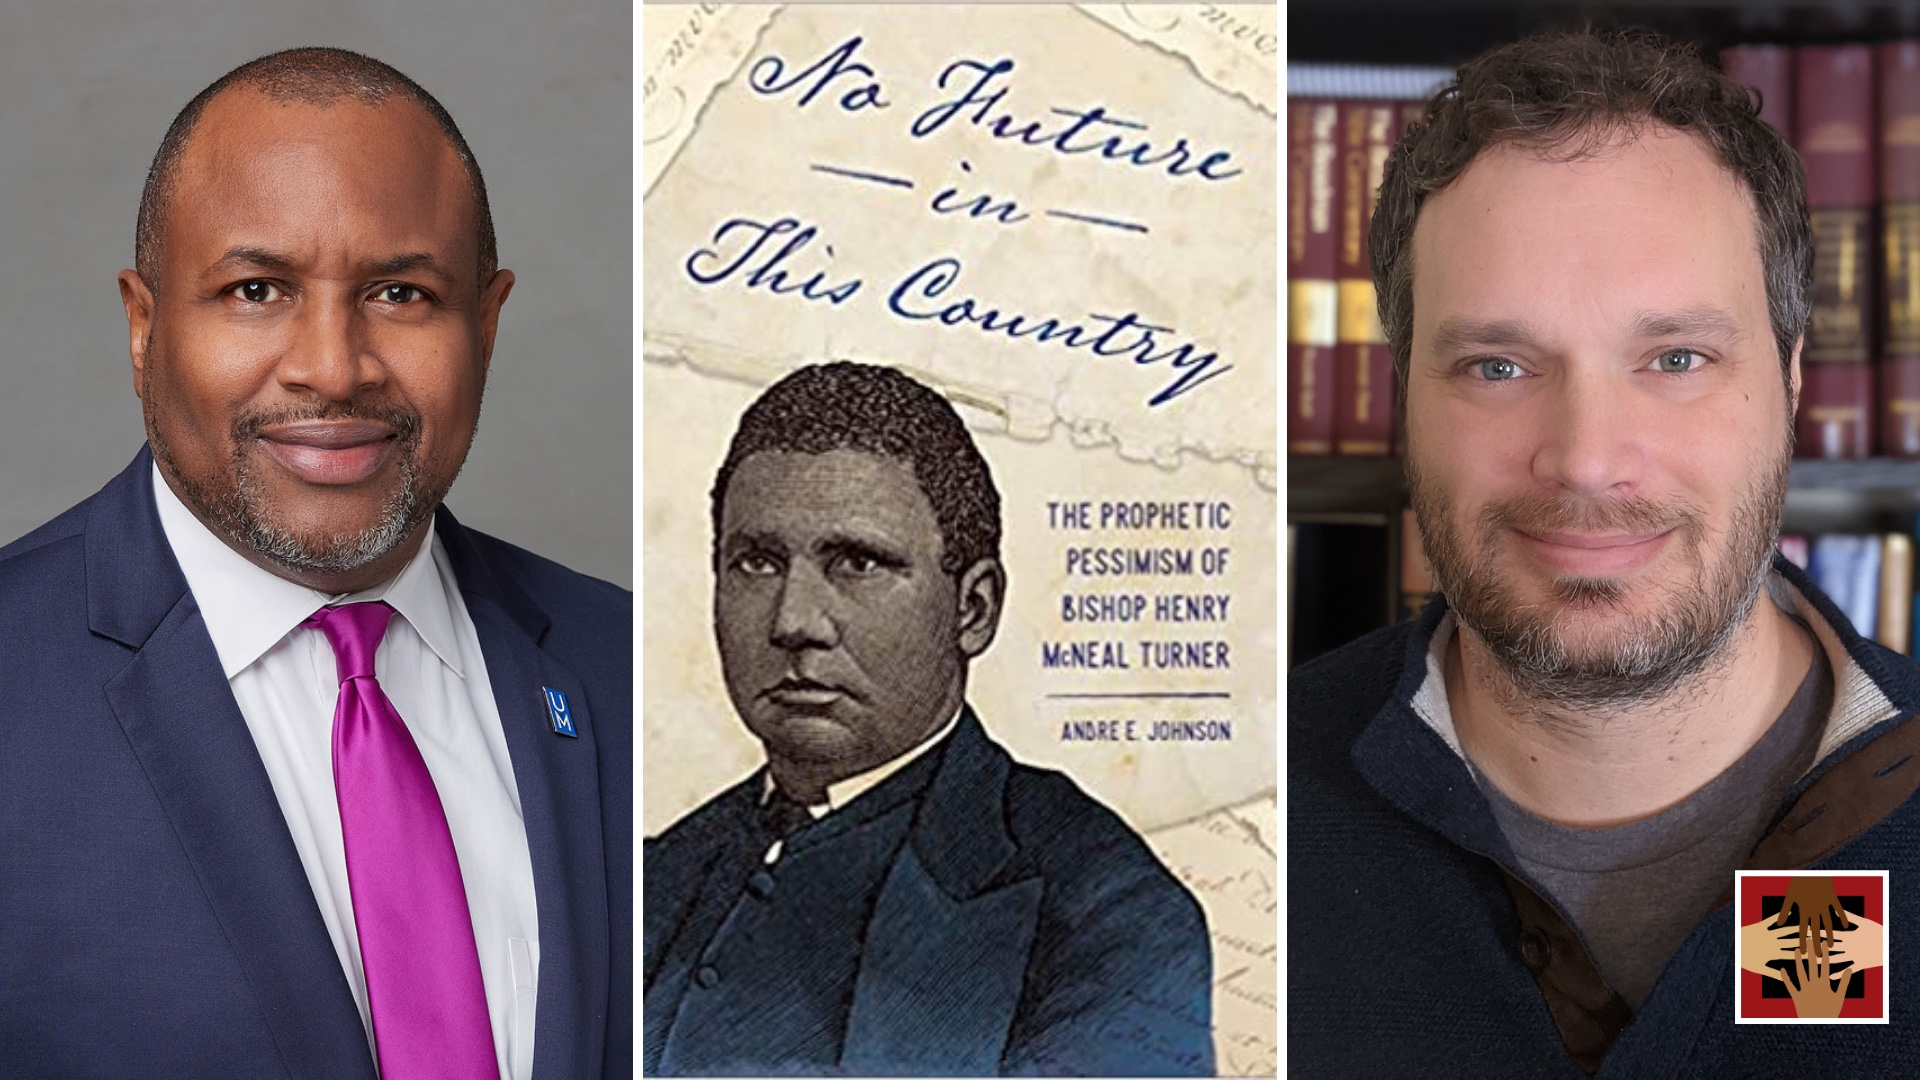 Andre Johnson, Left | Middle No Future in the County Book Cover | Right Tom Fuerst